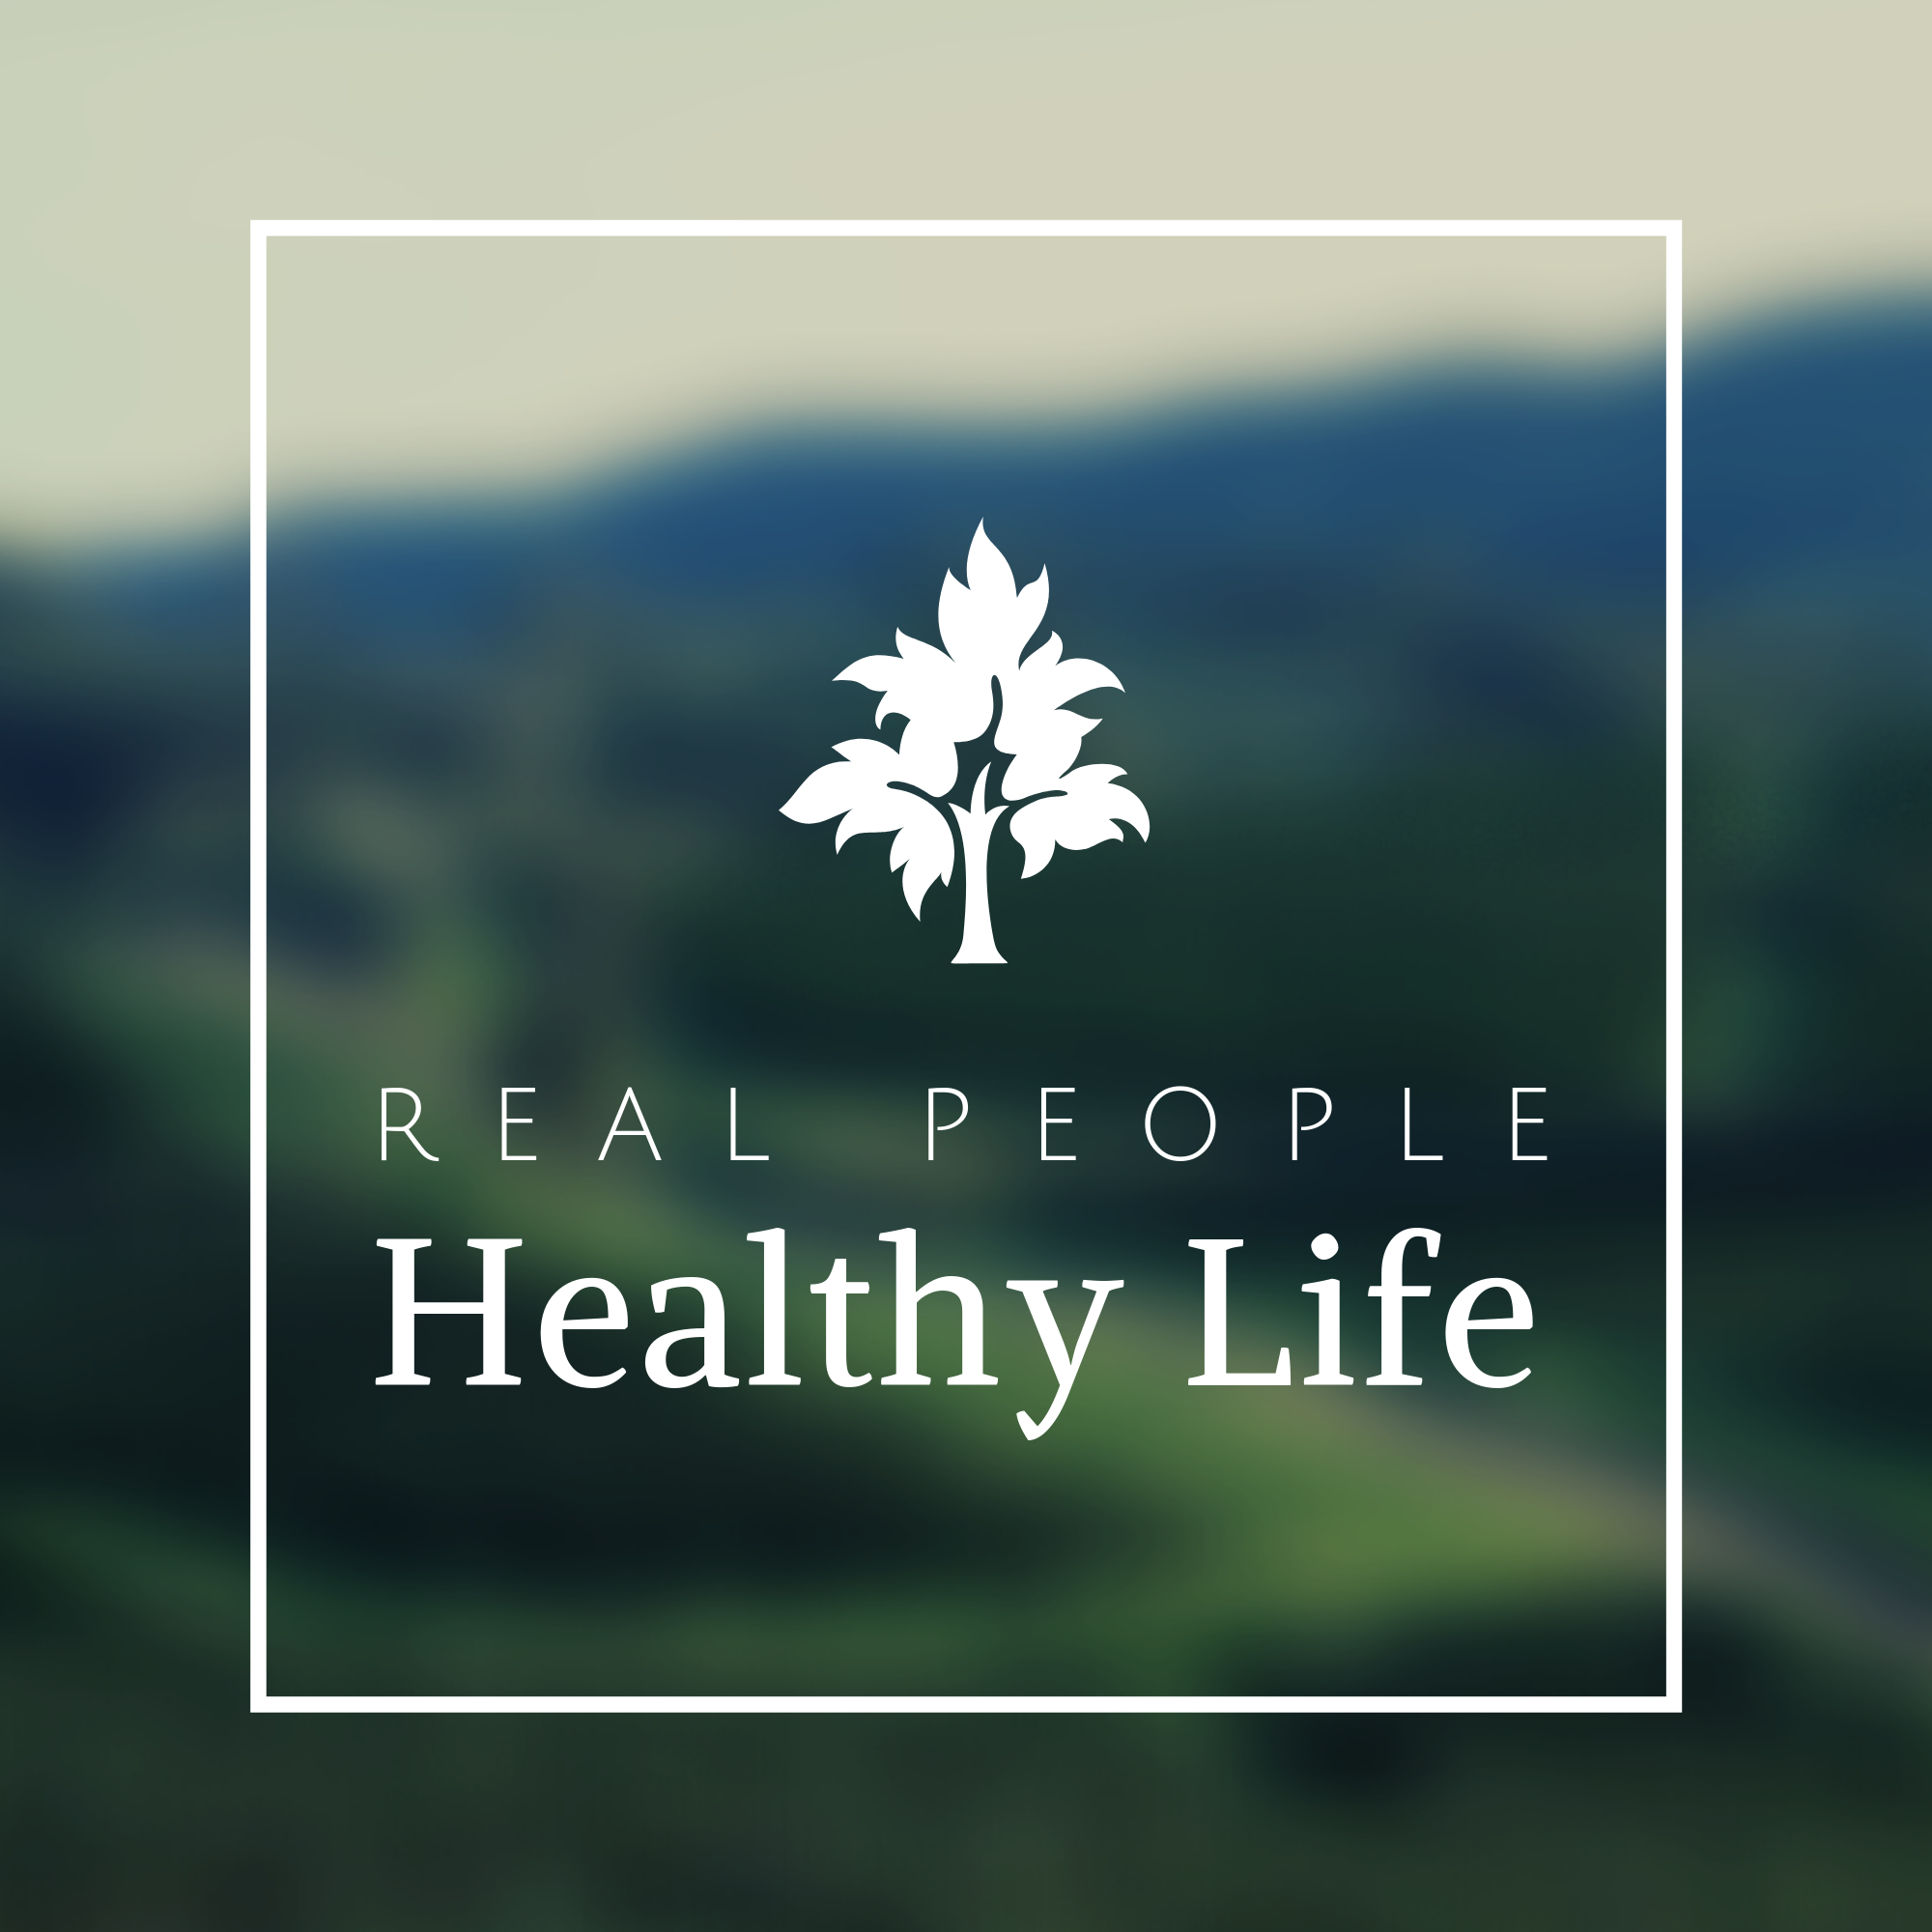 Real People, Healthy Life